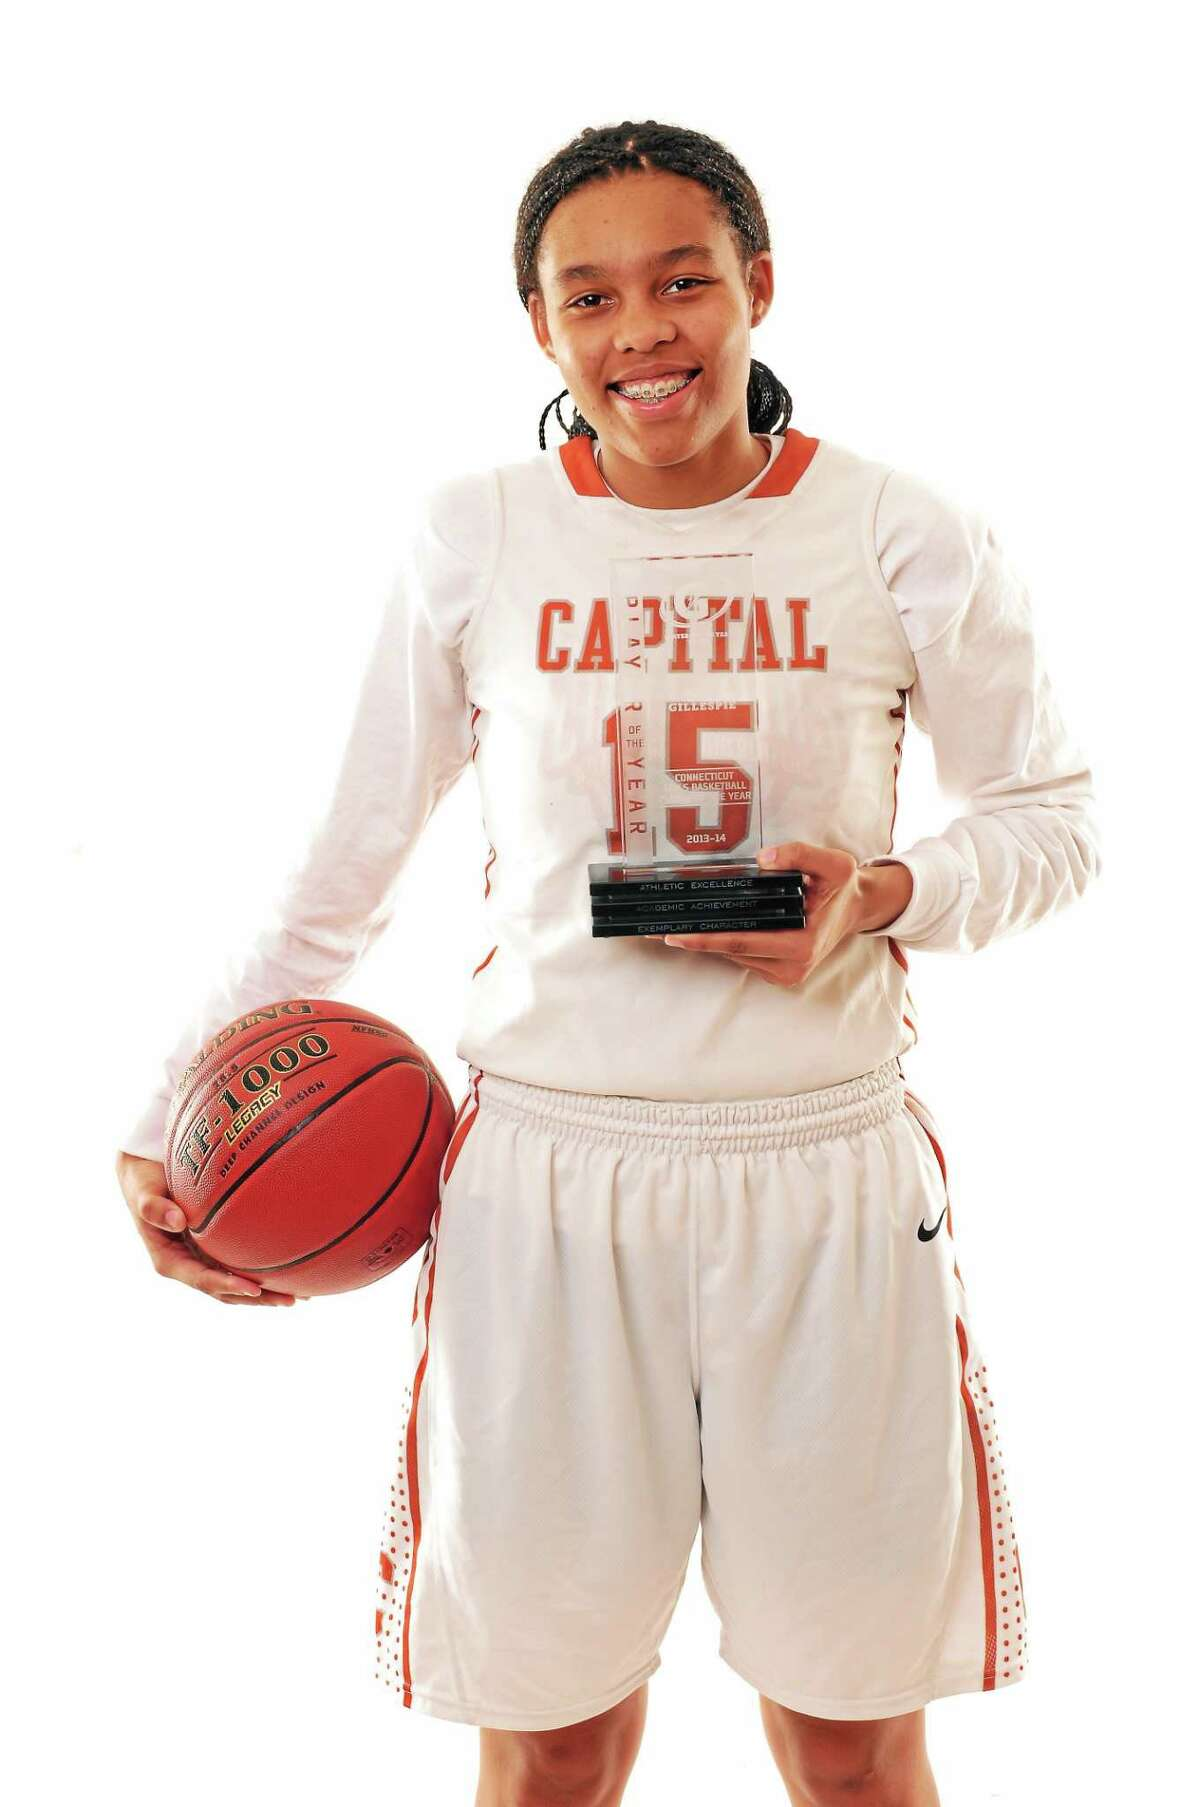 Capitol Prep's Kiah Gillespie made a strong impression at the U.S. Under-17 trials in Colorado.